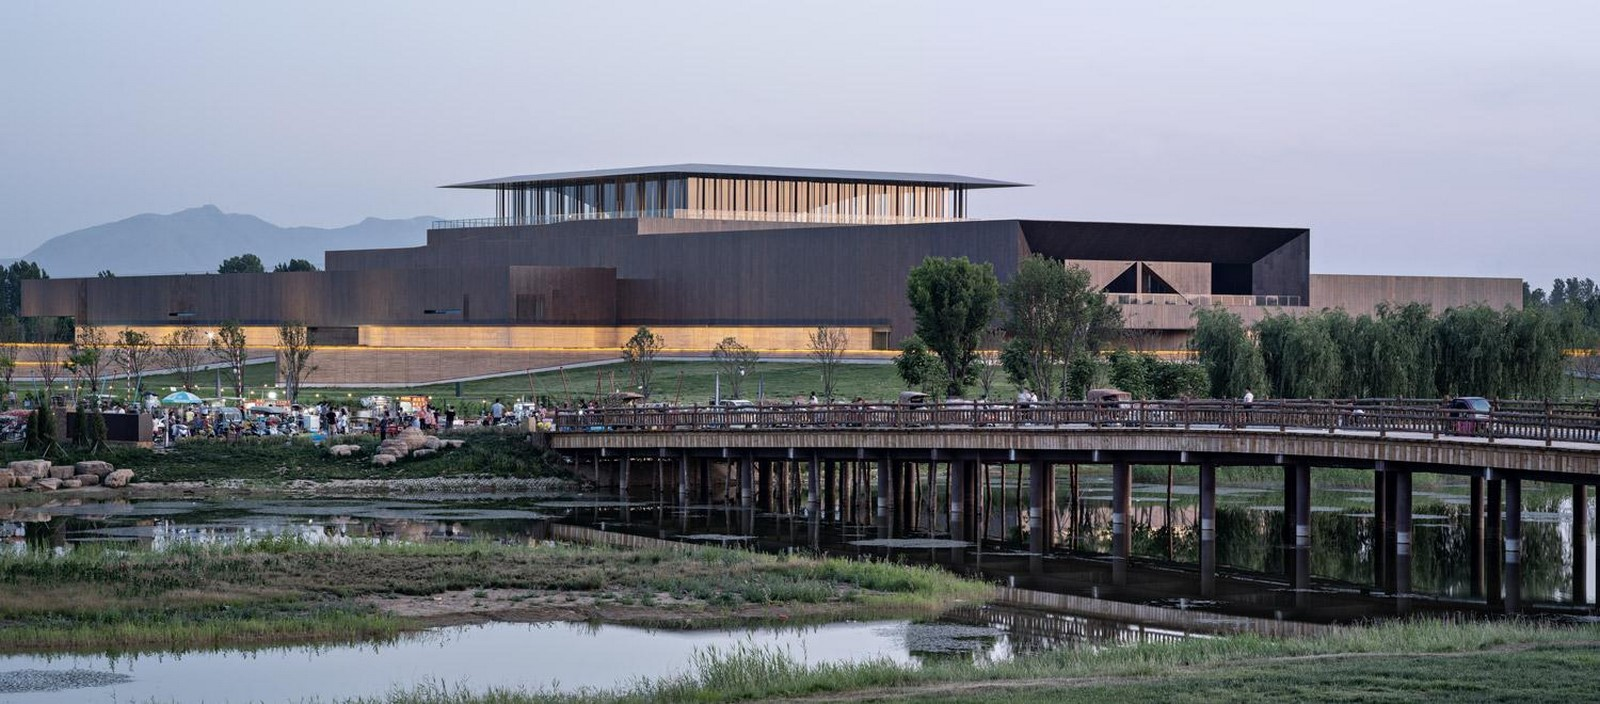 Erlitou Site Museum of the Xia Capital by TJAD and Rurban Studio: Preserving the existing - Sheet5